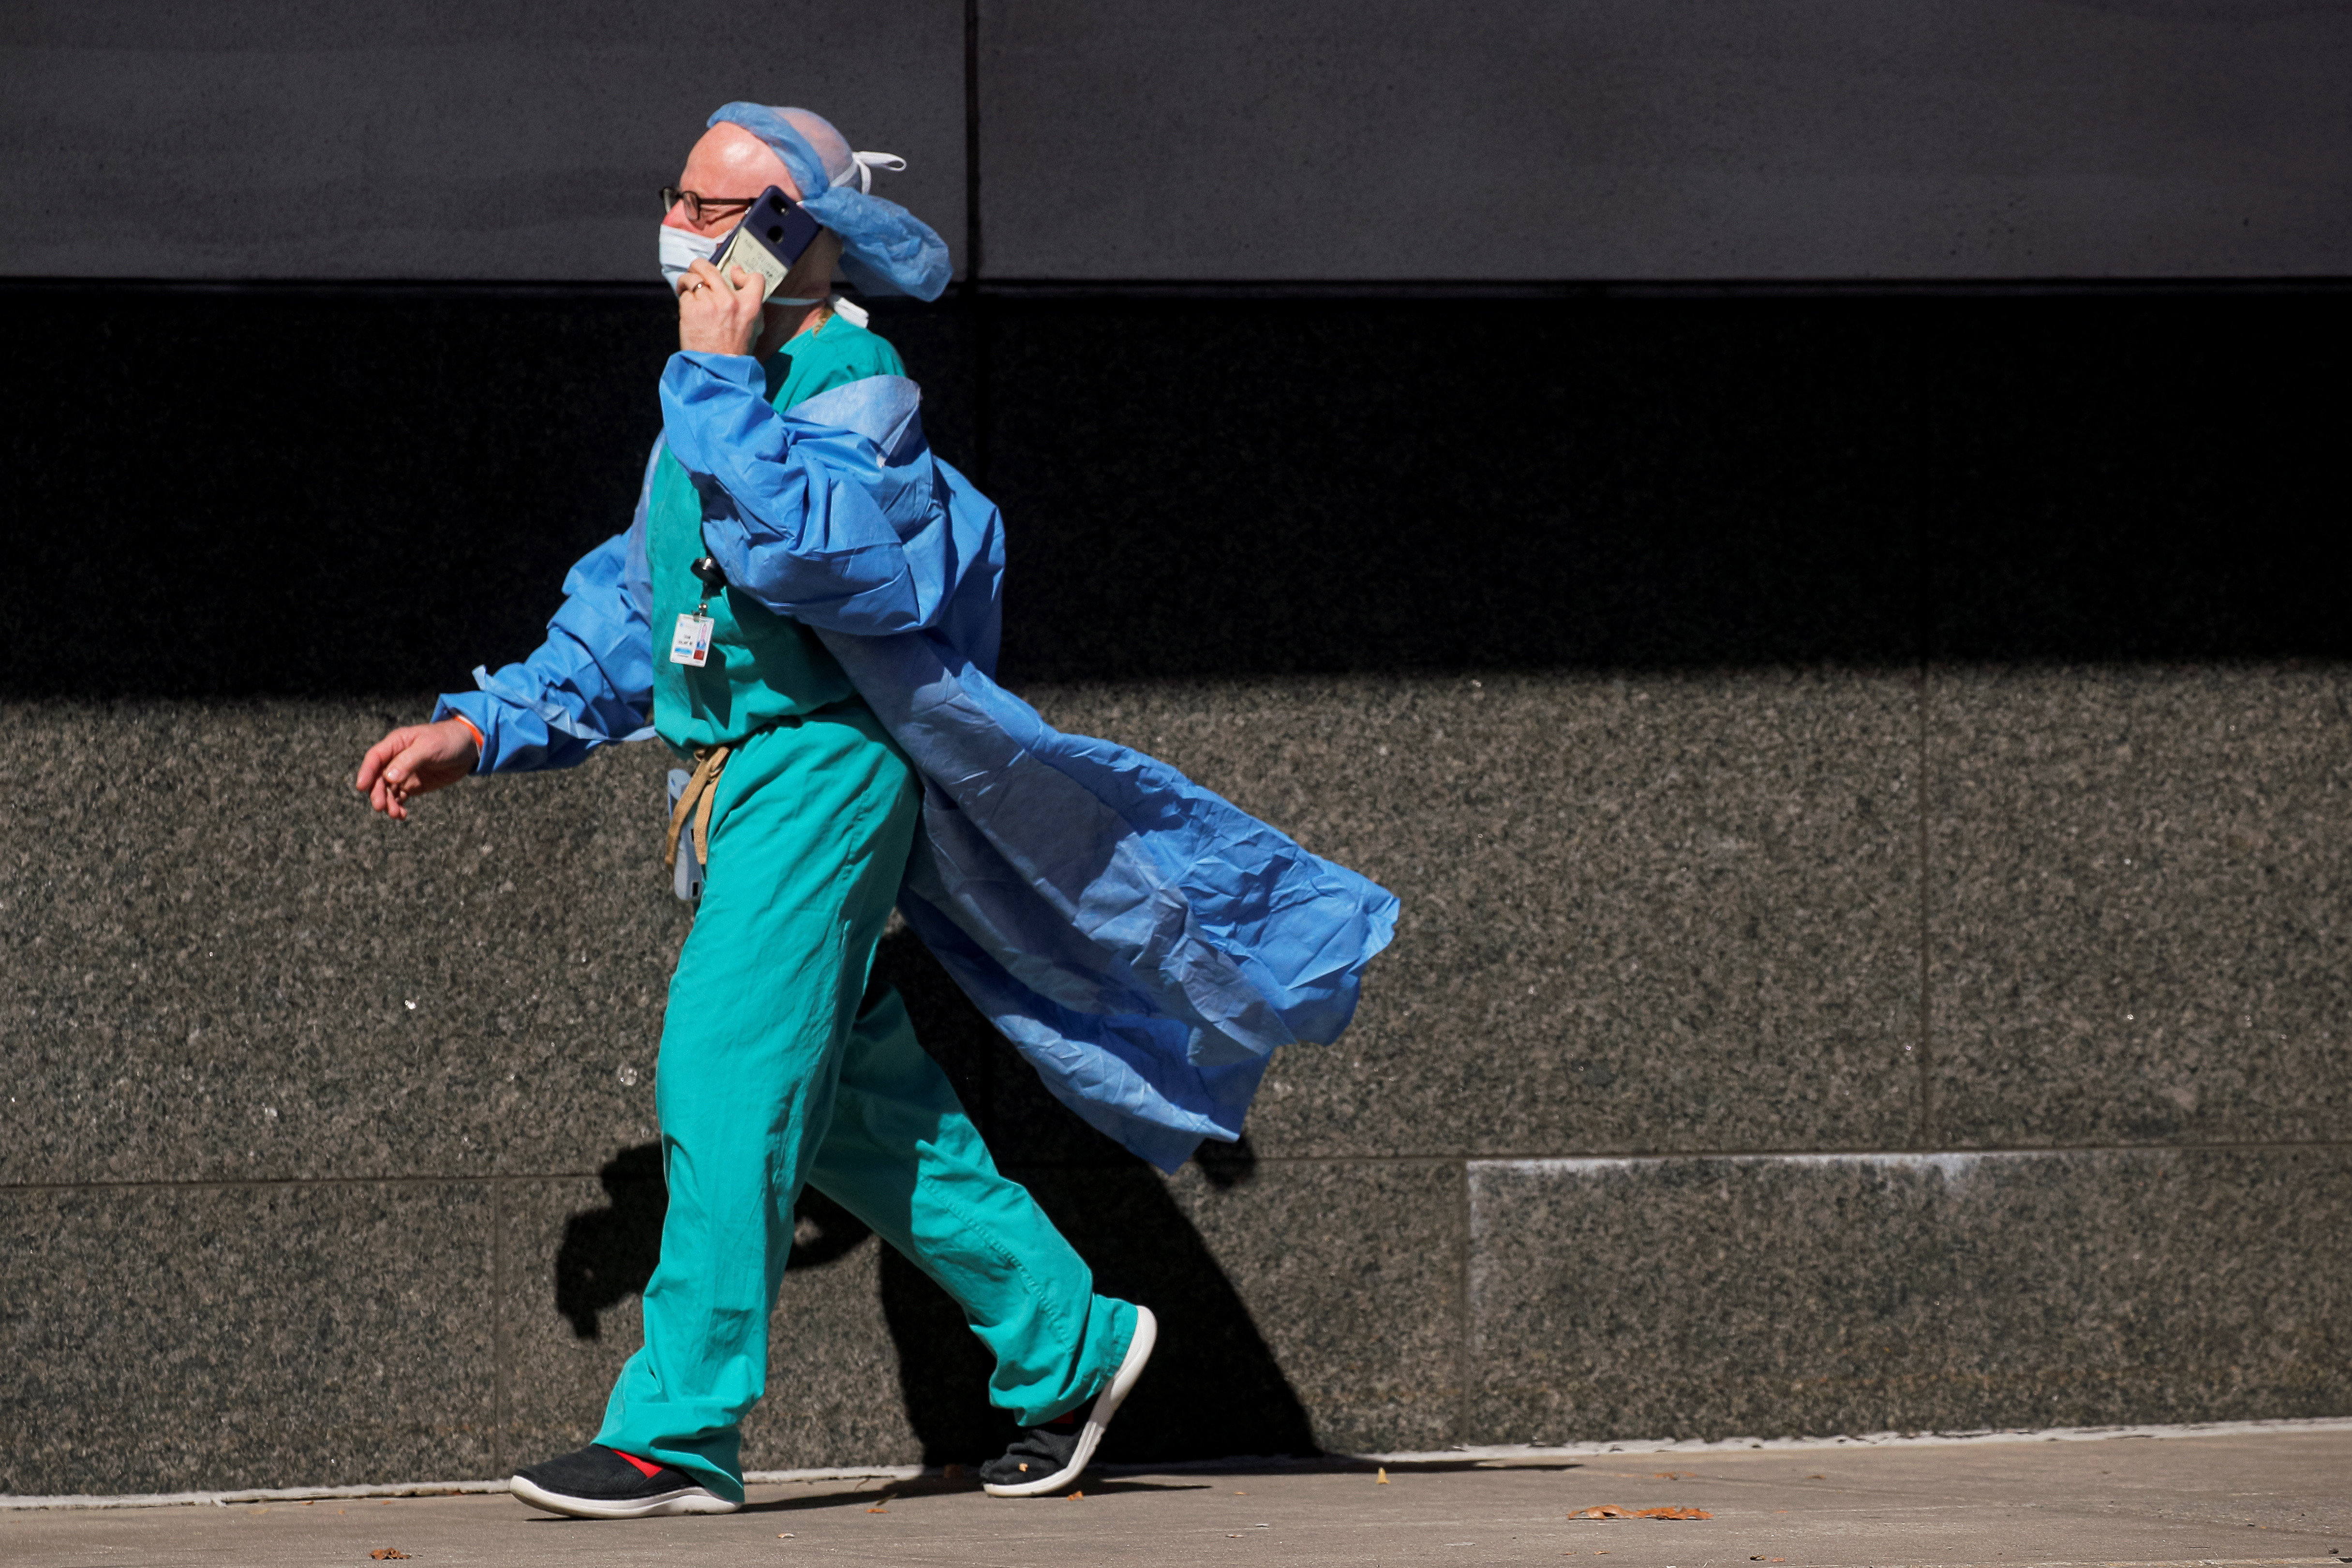 A doctor speaks on his phone outside the Emergency entrance to Maimonides Medical Center, as the spread of the coronavirus disease (COVID-19) continues, in the Borough Park neighborhood of Brooklyn, New York, U.S., October 14, 2020.  REUTERS/Brendan McDermid - RC2OIJ9HBHCR